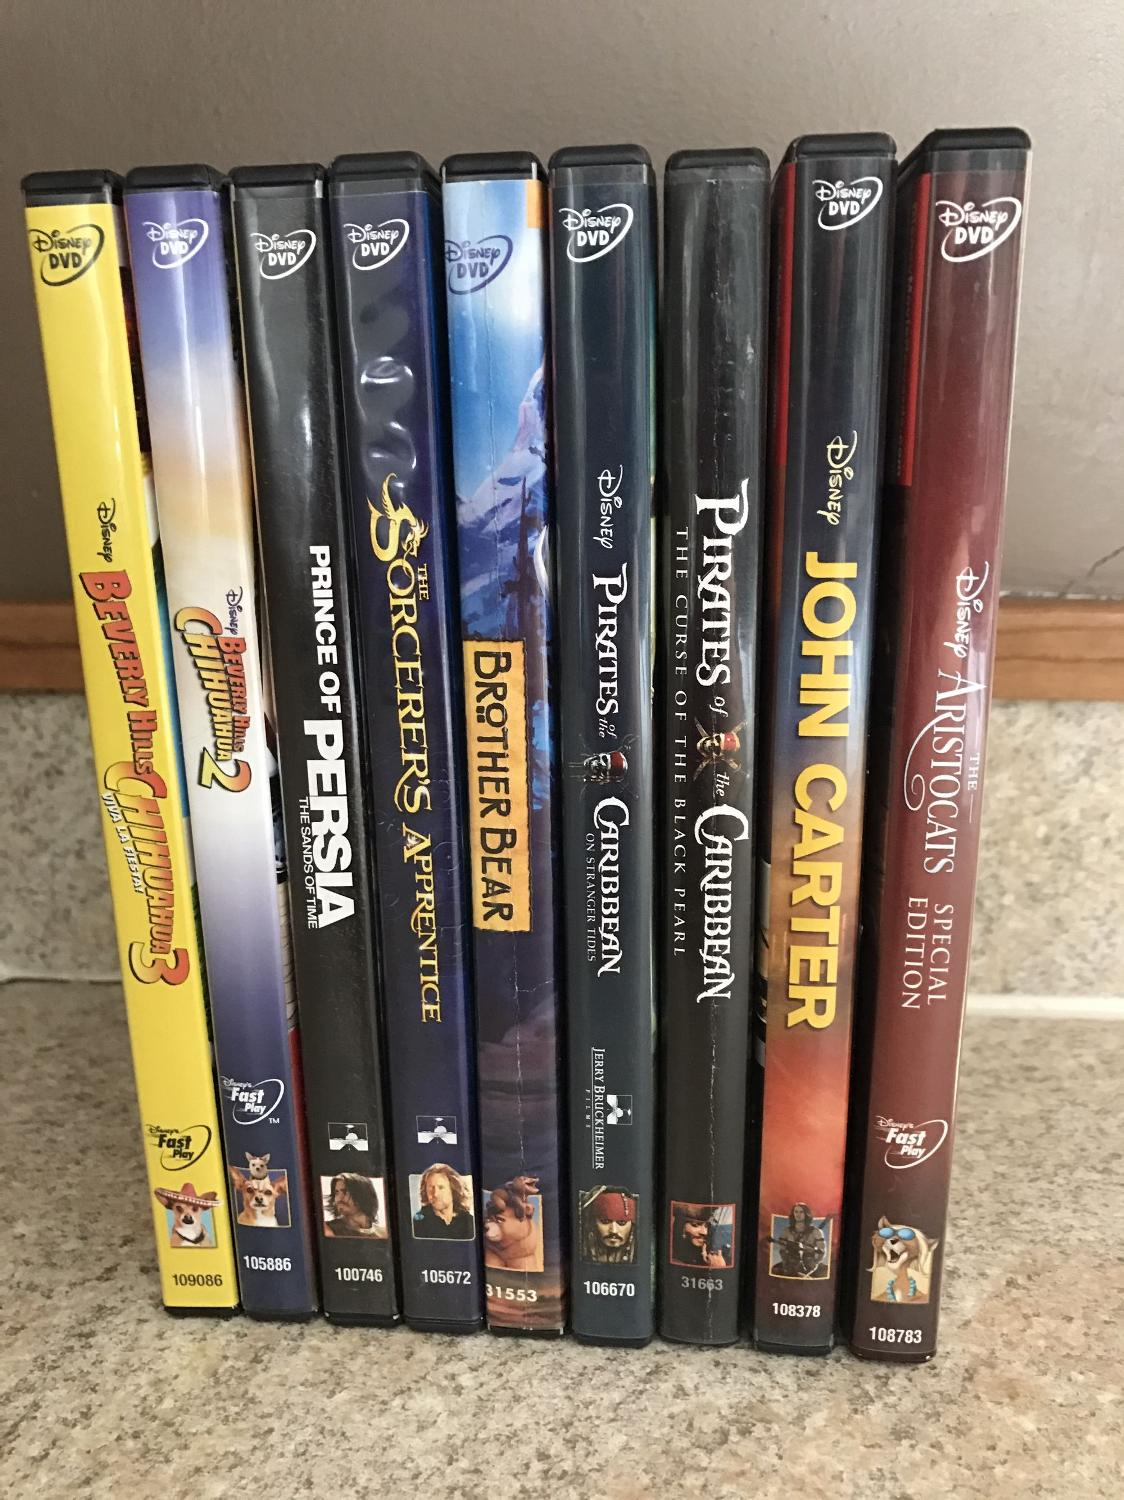 Best Disney Dvd 39 S For Sale In Minot North Dakota For 2018